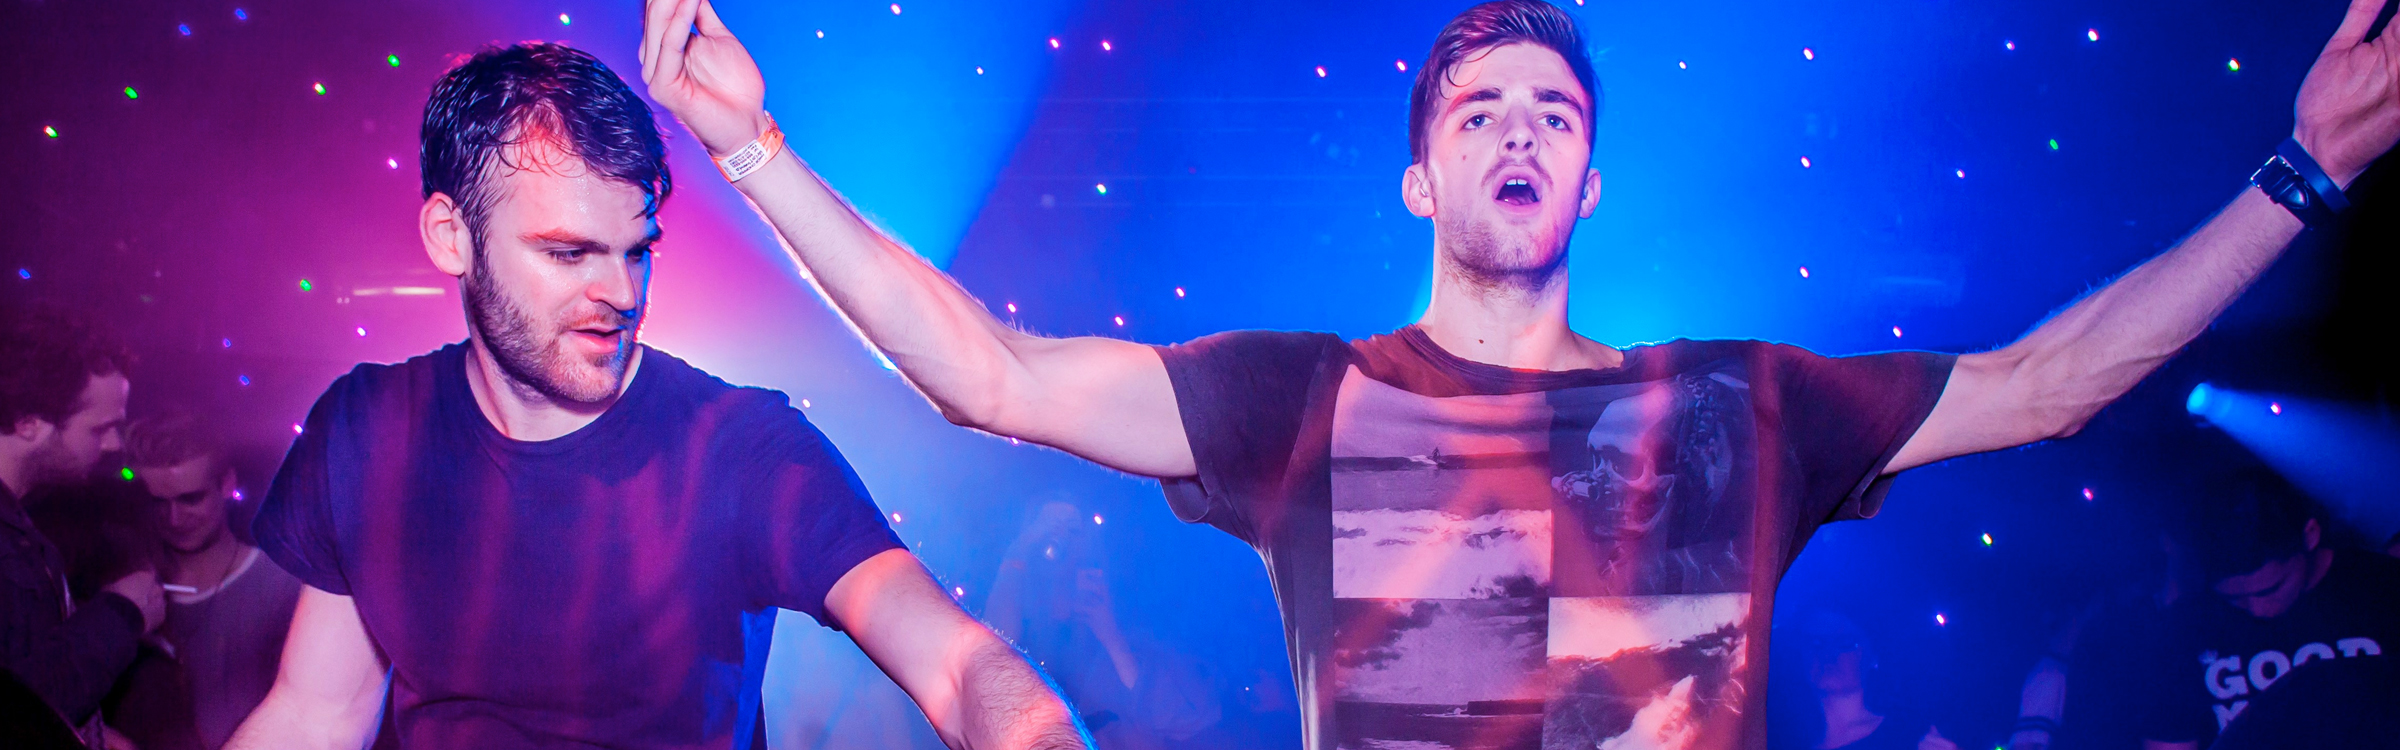 Header the chainsmokers nieuw